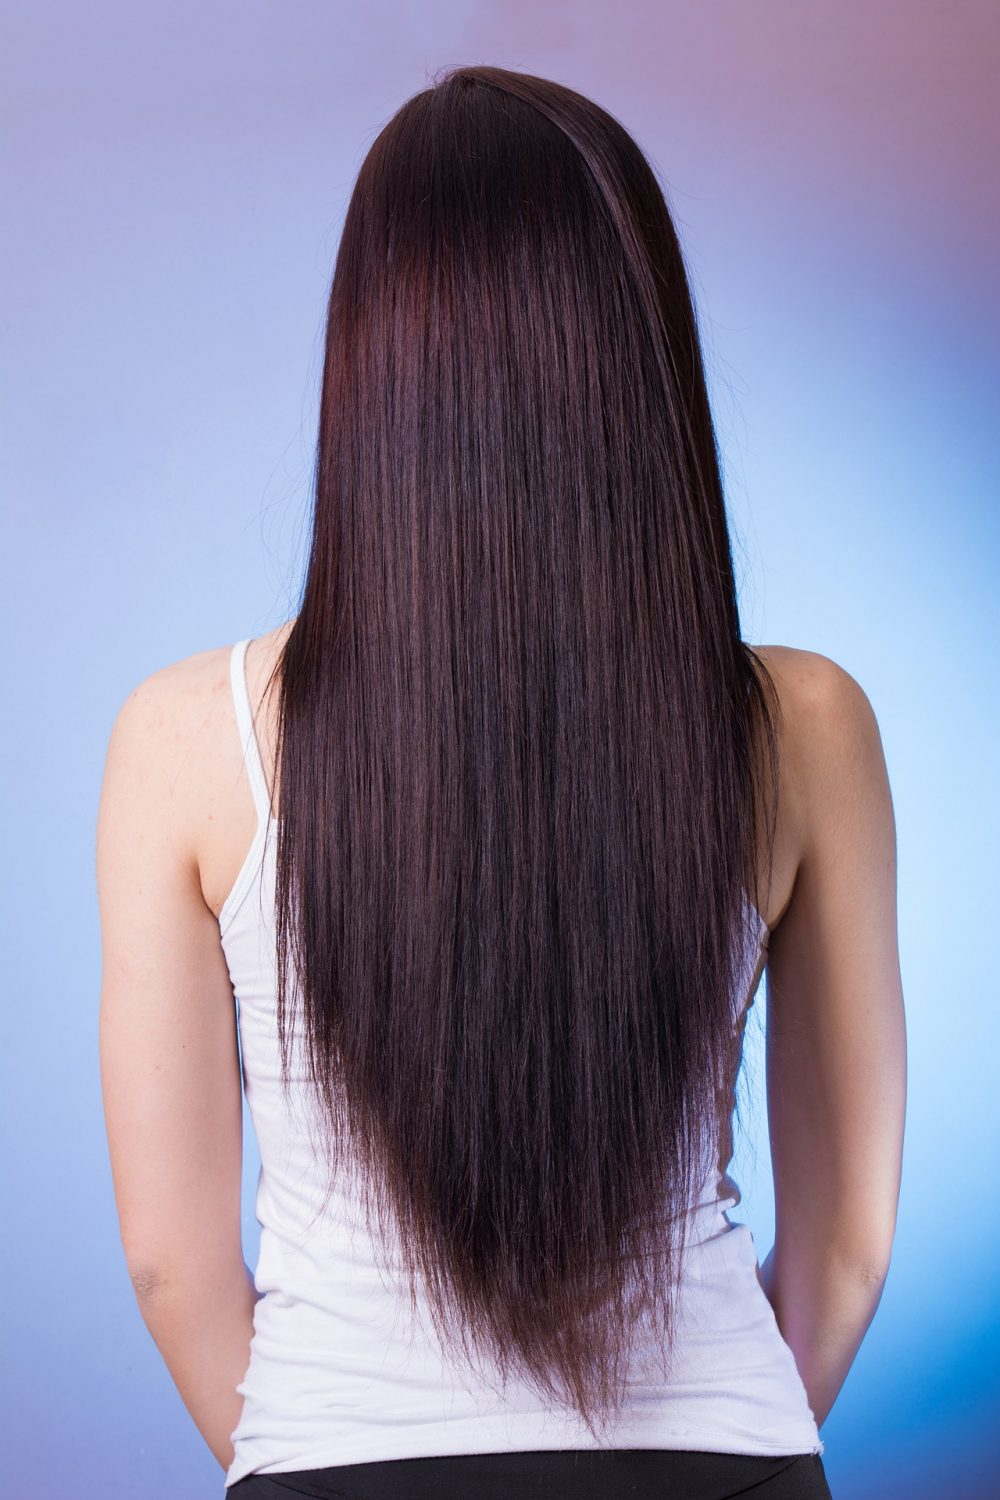 10 Home Remedies for Hair Growth in Tamil